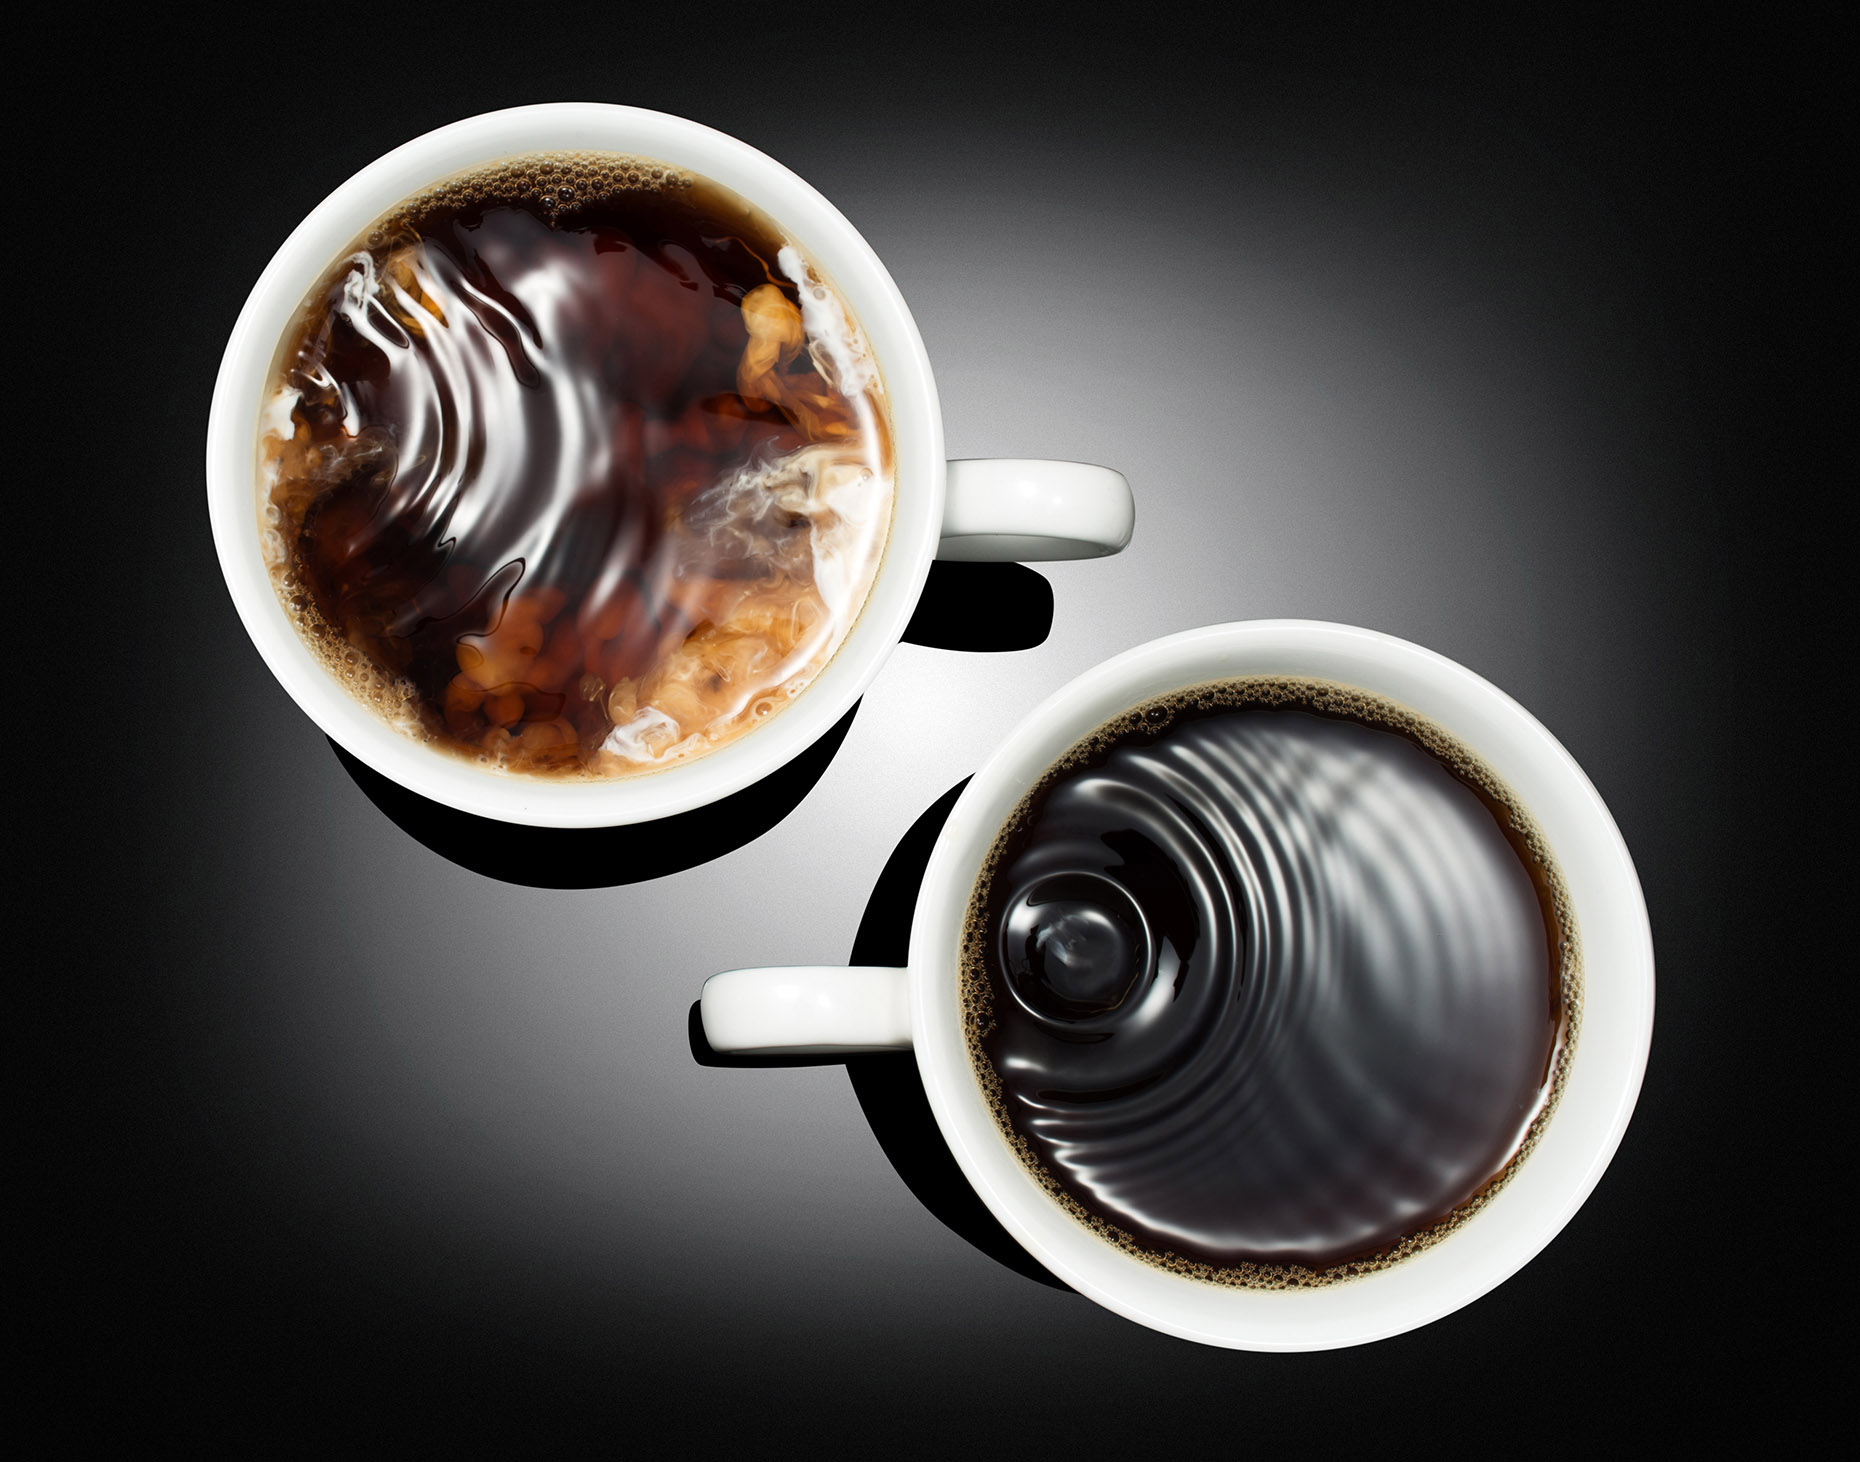 New-York-Beverage-photography-drink-photo-studio-coffee-black-n-cream